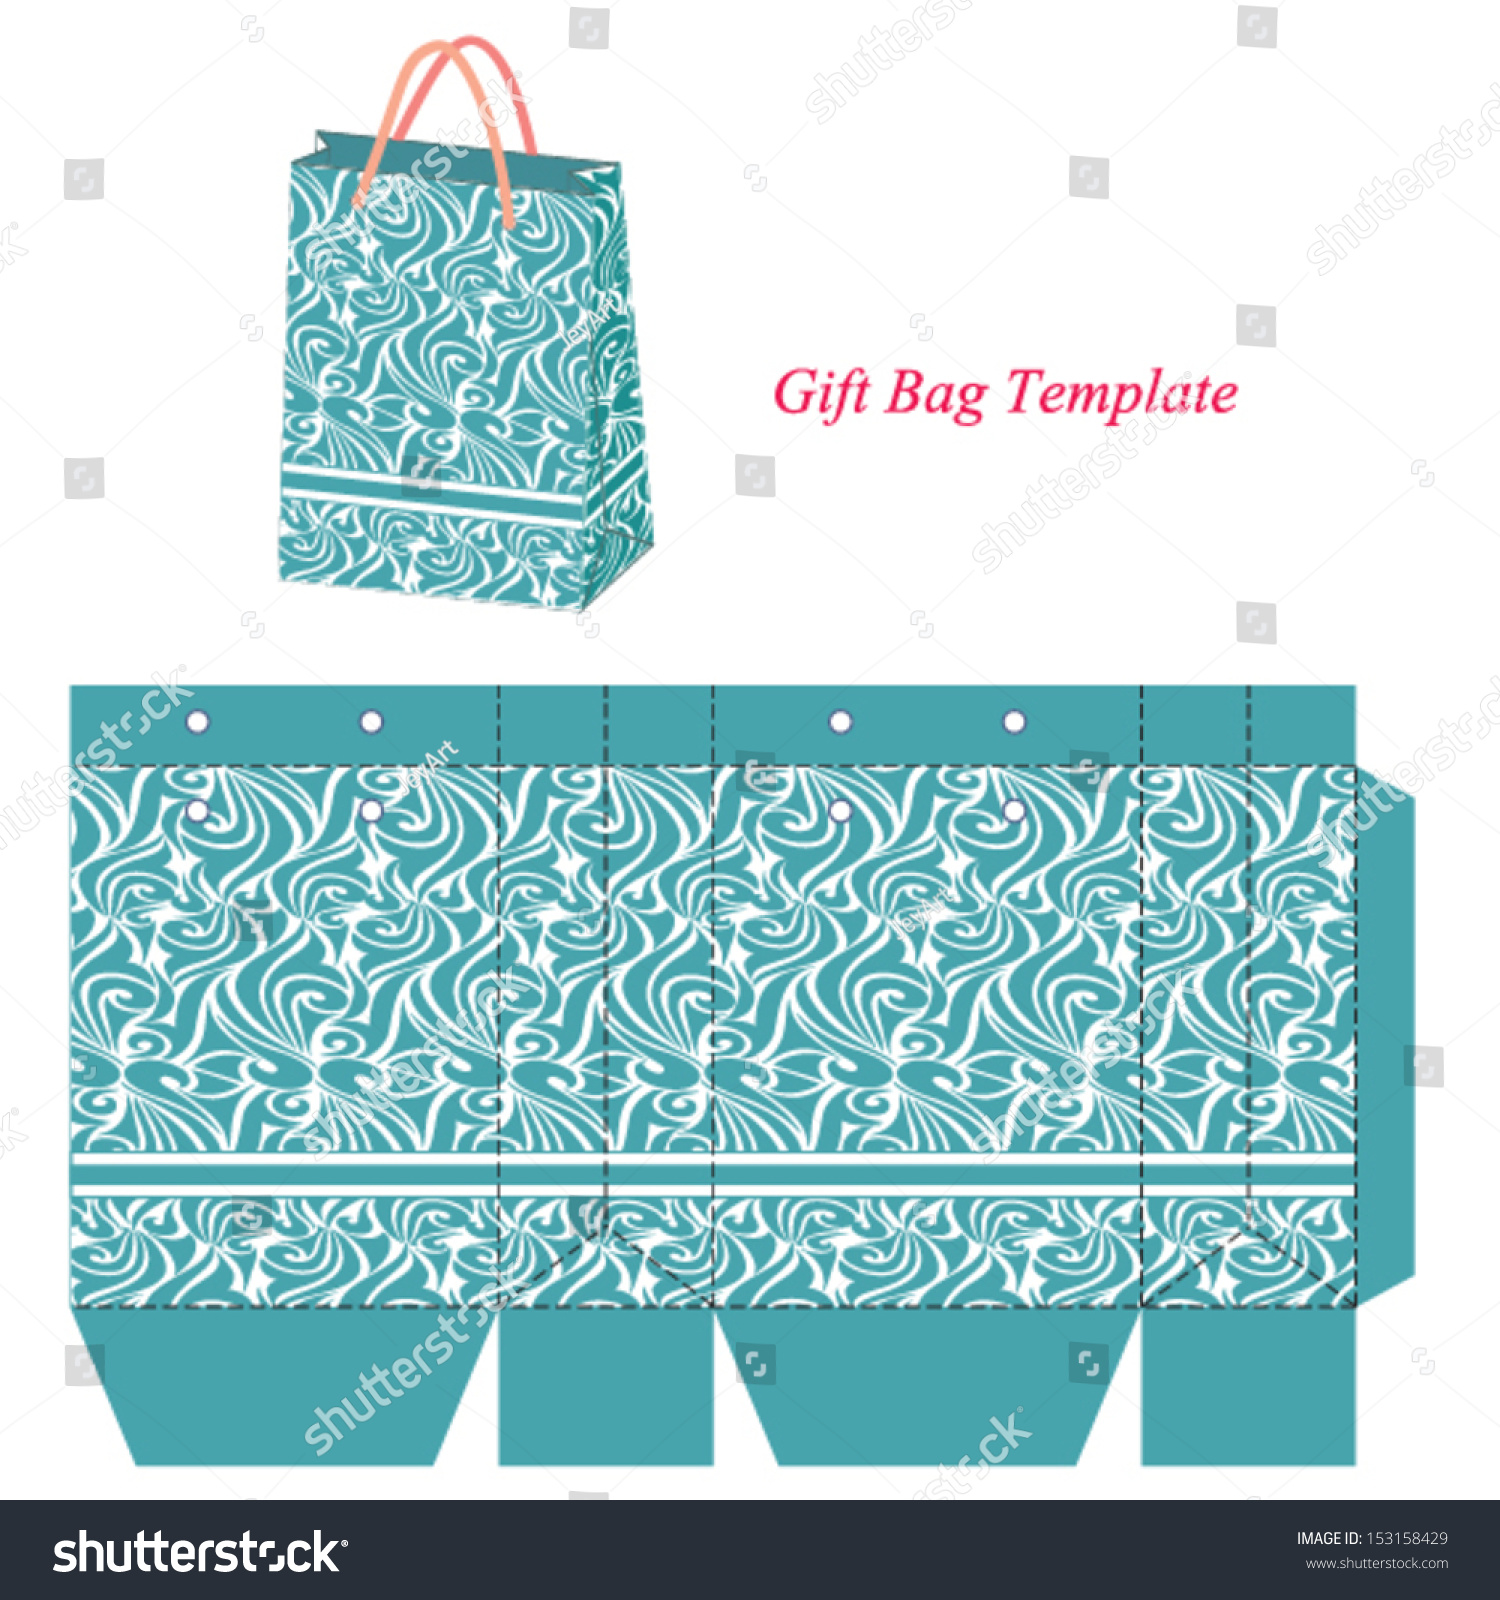 Blue Gift Bag Template With Seamless Pattern. Vector Illustration ...